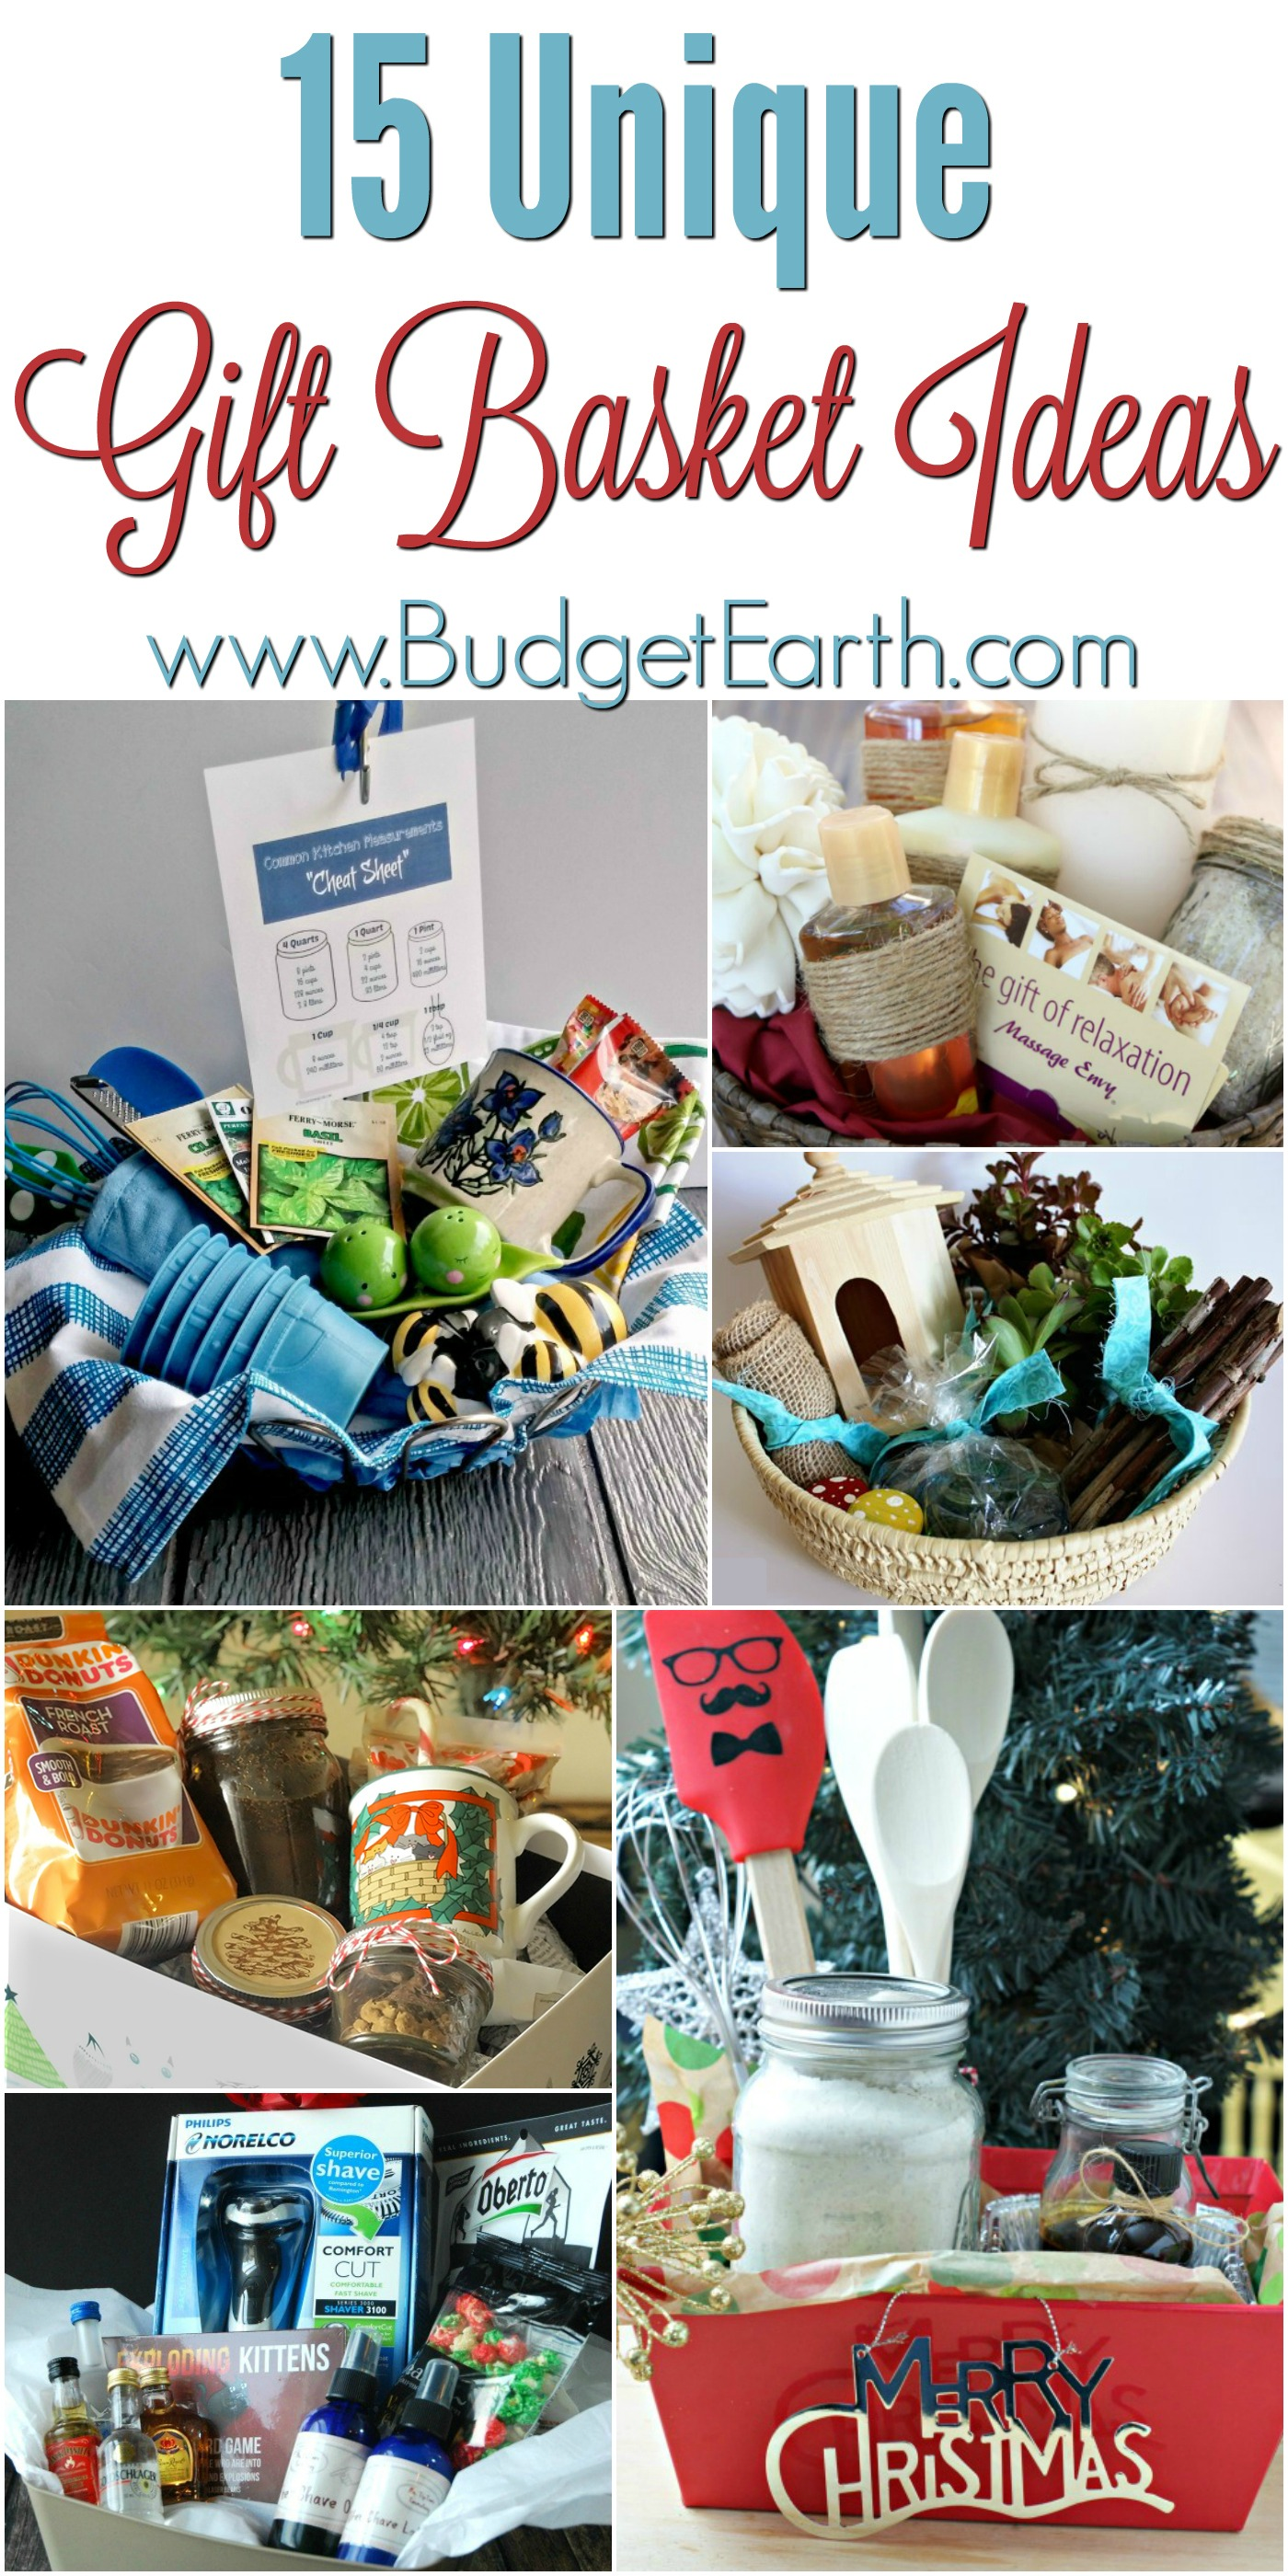 15 Unique Gift Basket Ideas